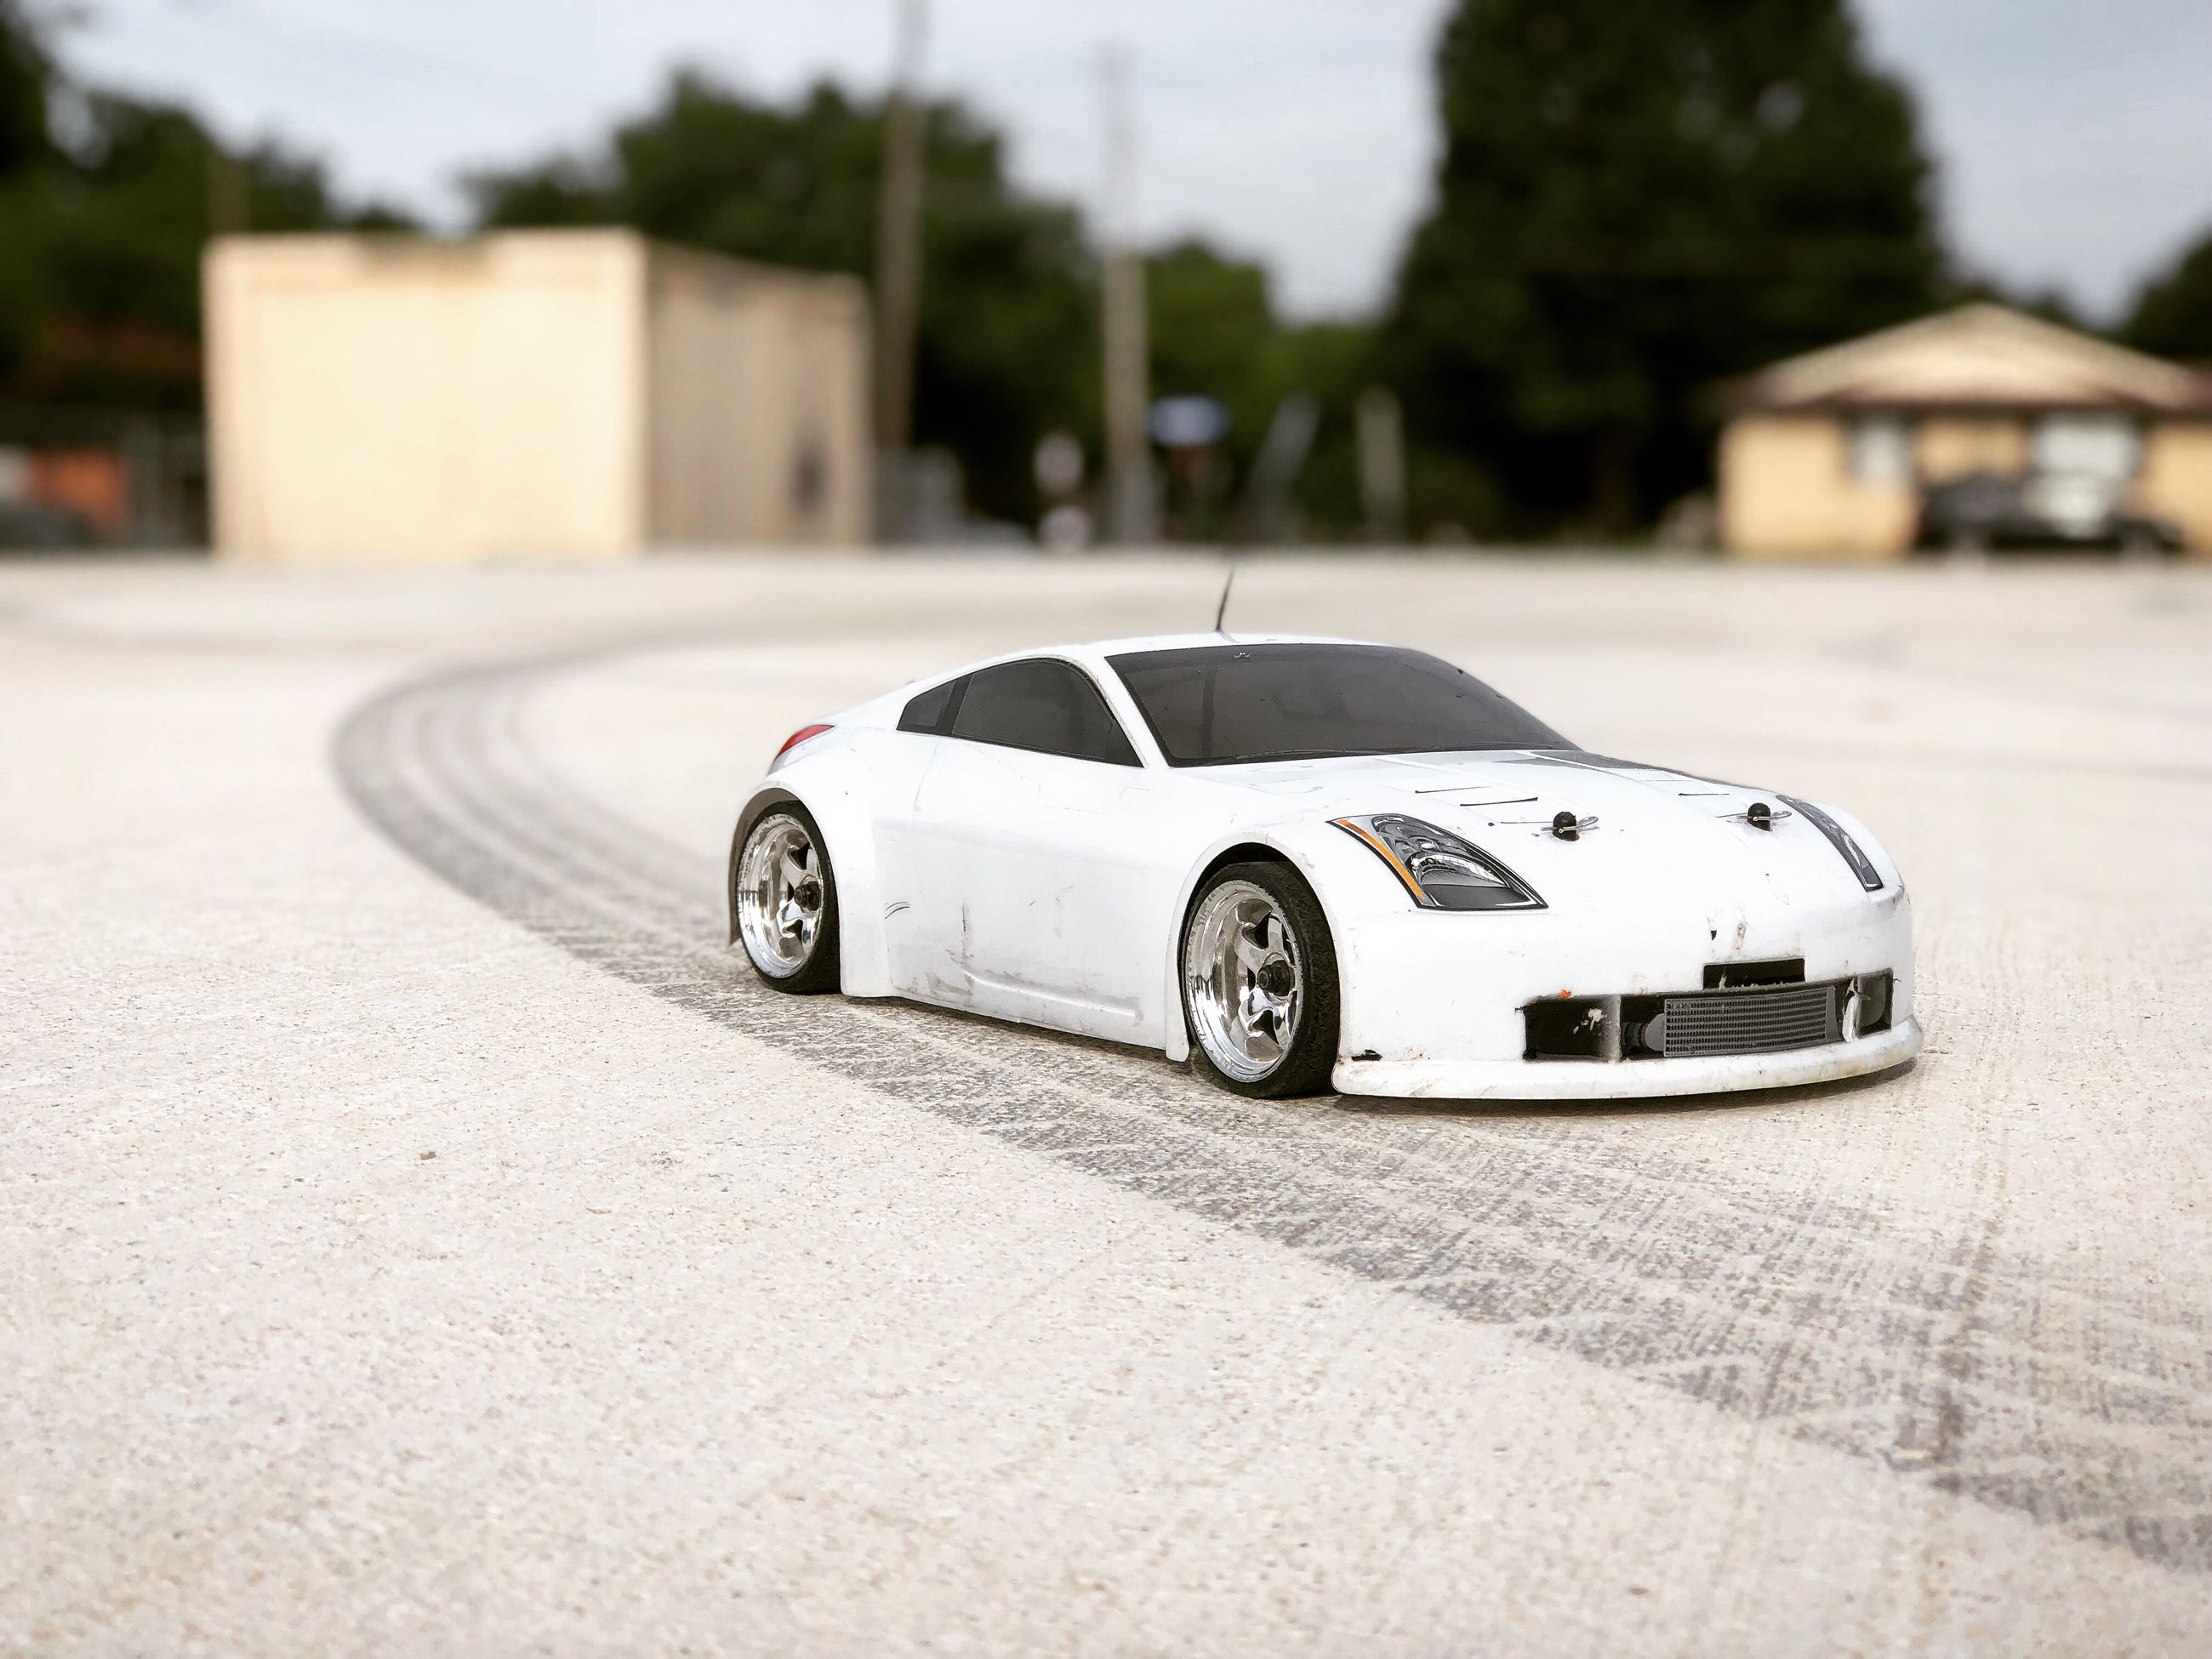 transportation, car, mode of transportation, motor vehicle, land vehicle, architecture, building exterior, built structure, day, road, no people, selective focus, focus on foreground, city, street, retro styled, toy, wealth, outdoors, luxury, wheel